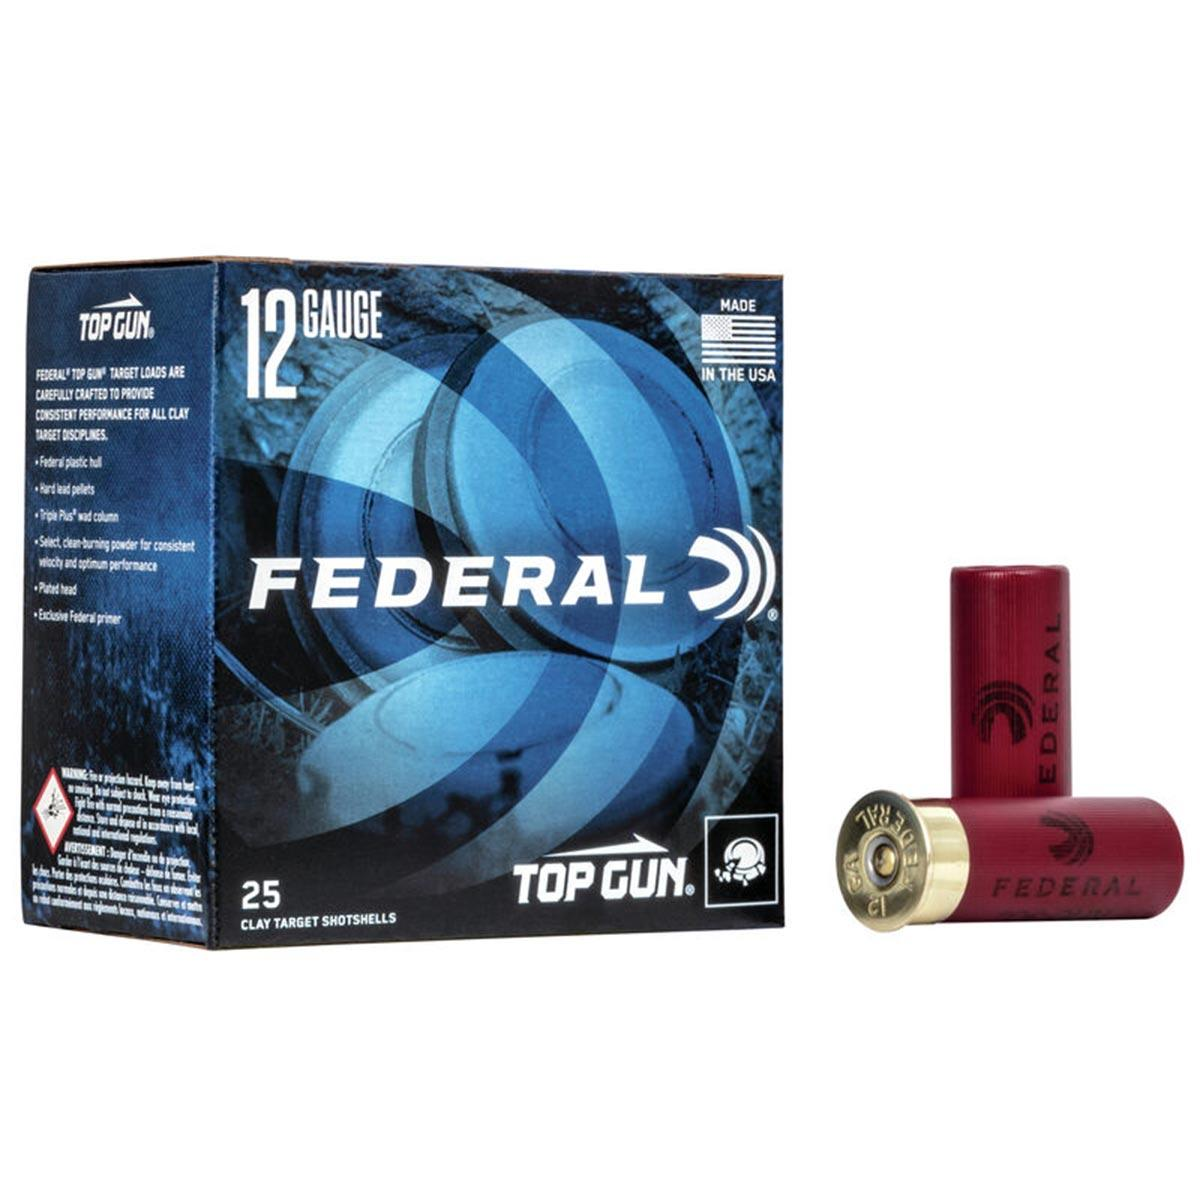 "Federal Lead Top Gun Target Load, 12 Gauge 2 3/4 "", 1-1/8 oz_1.jpg"